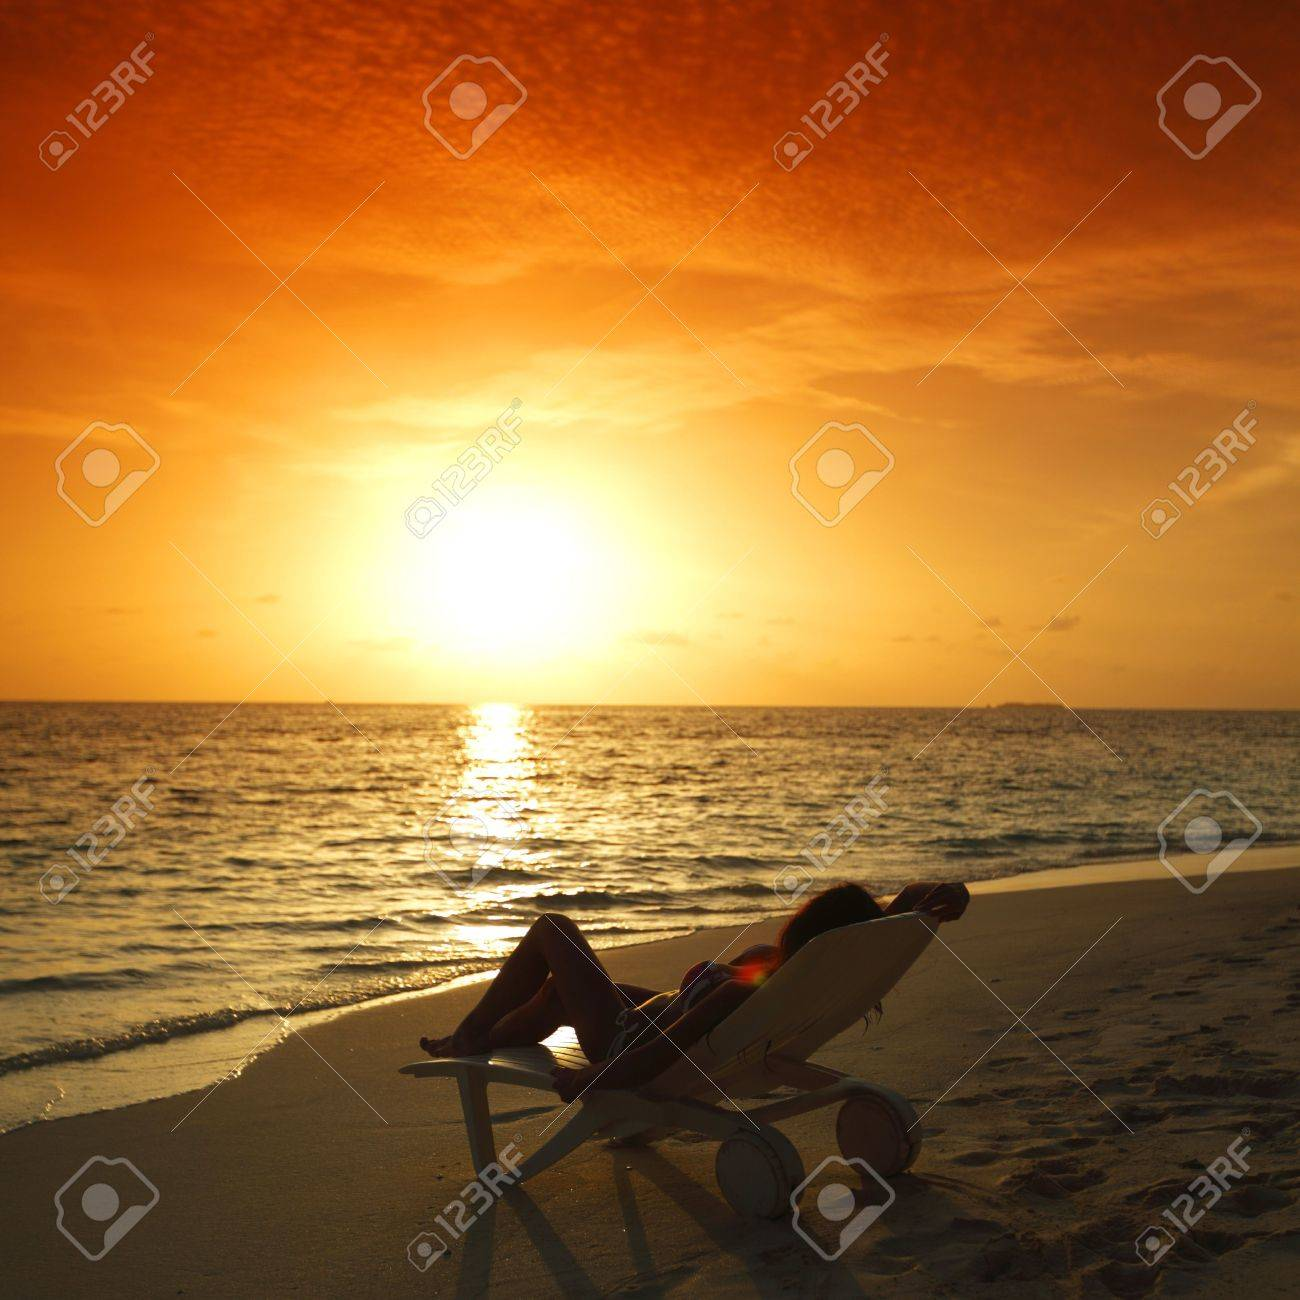 Beach sunset with chairs - Woman In Chaise Lounge Relaxing On Sunset Beach Stock Photo 16339022